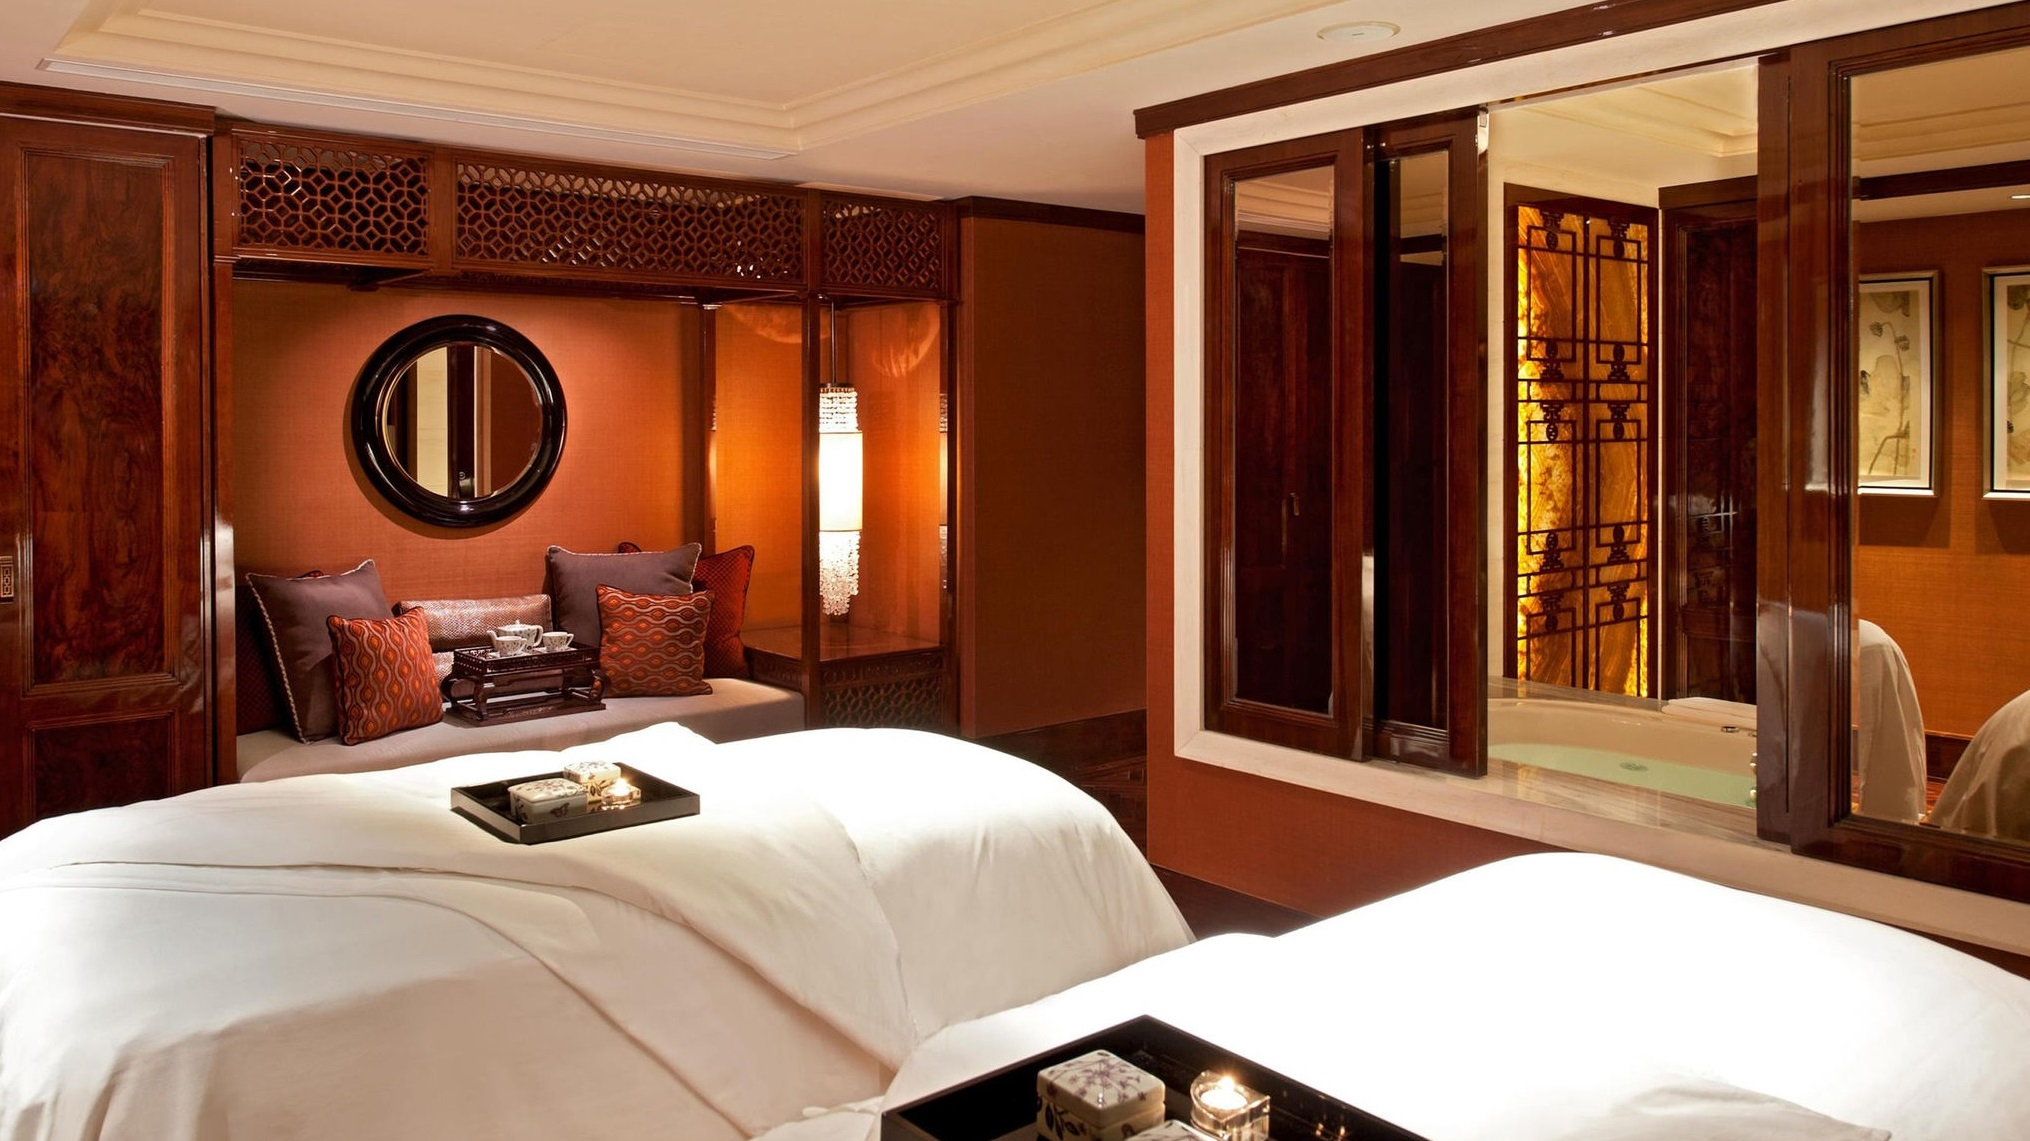 Image of Willow Stream Spa Fairmont Peace Hotel Shanghai China.